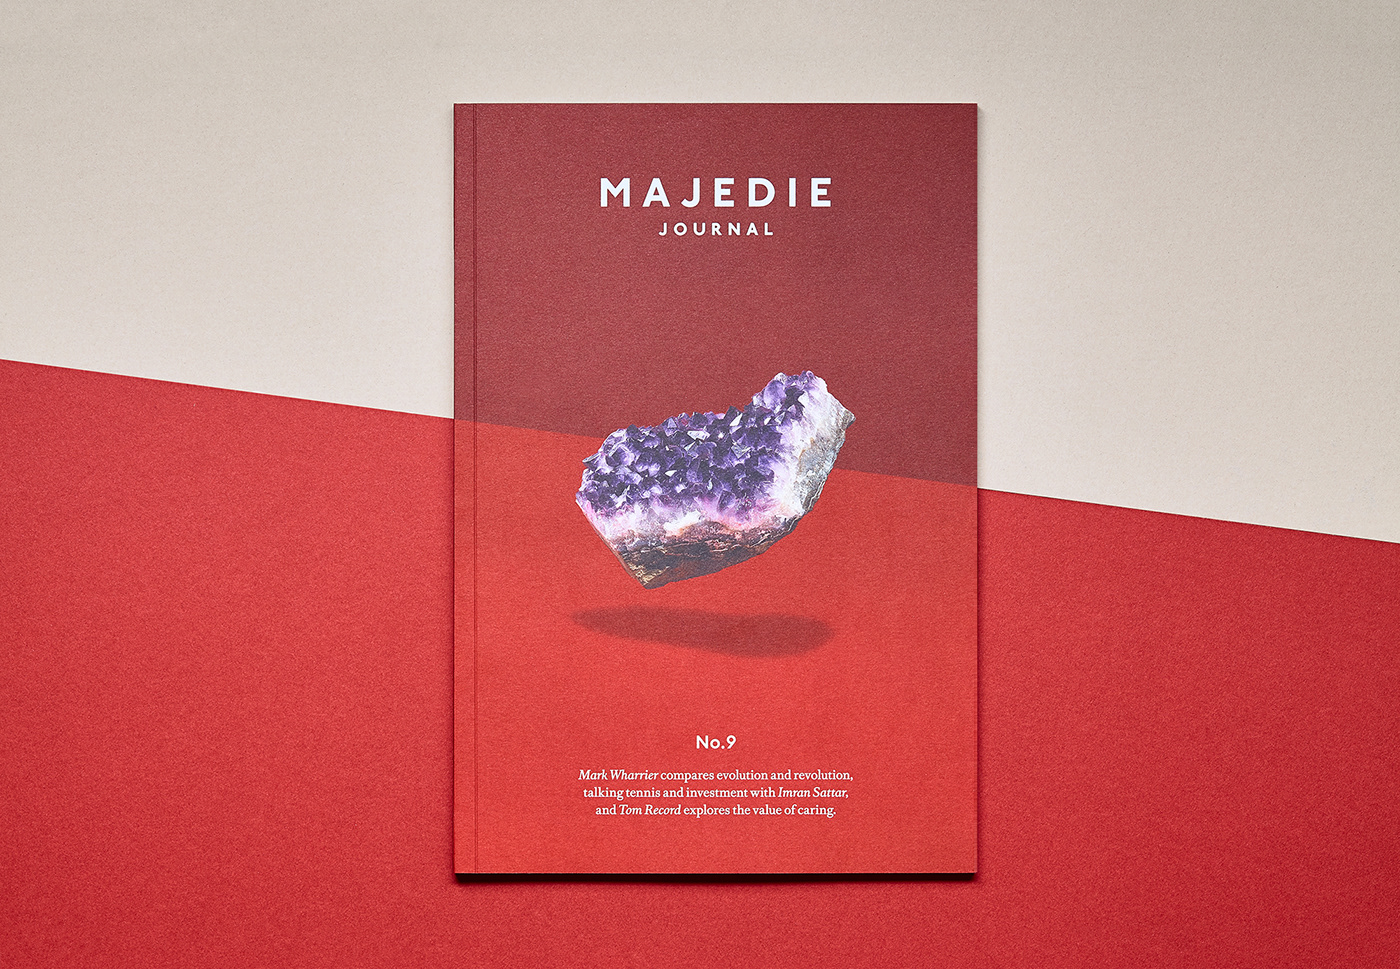 Majedie Journal